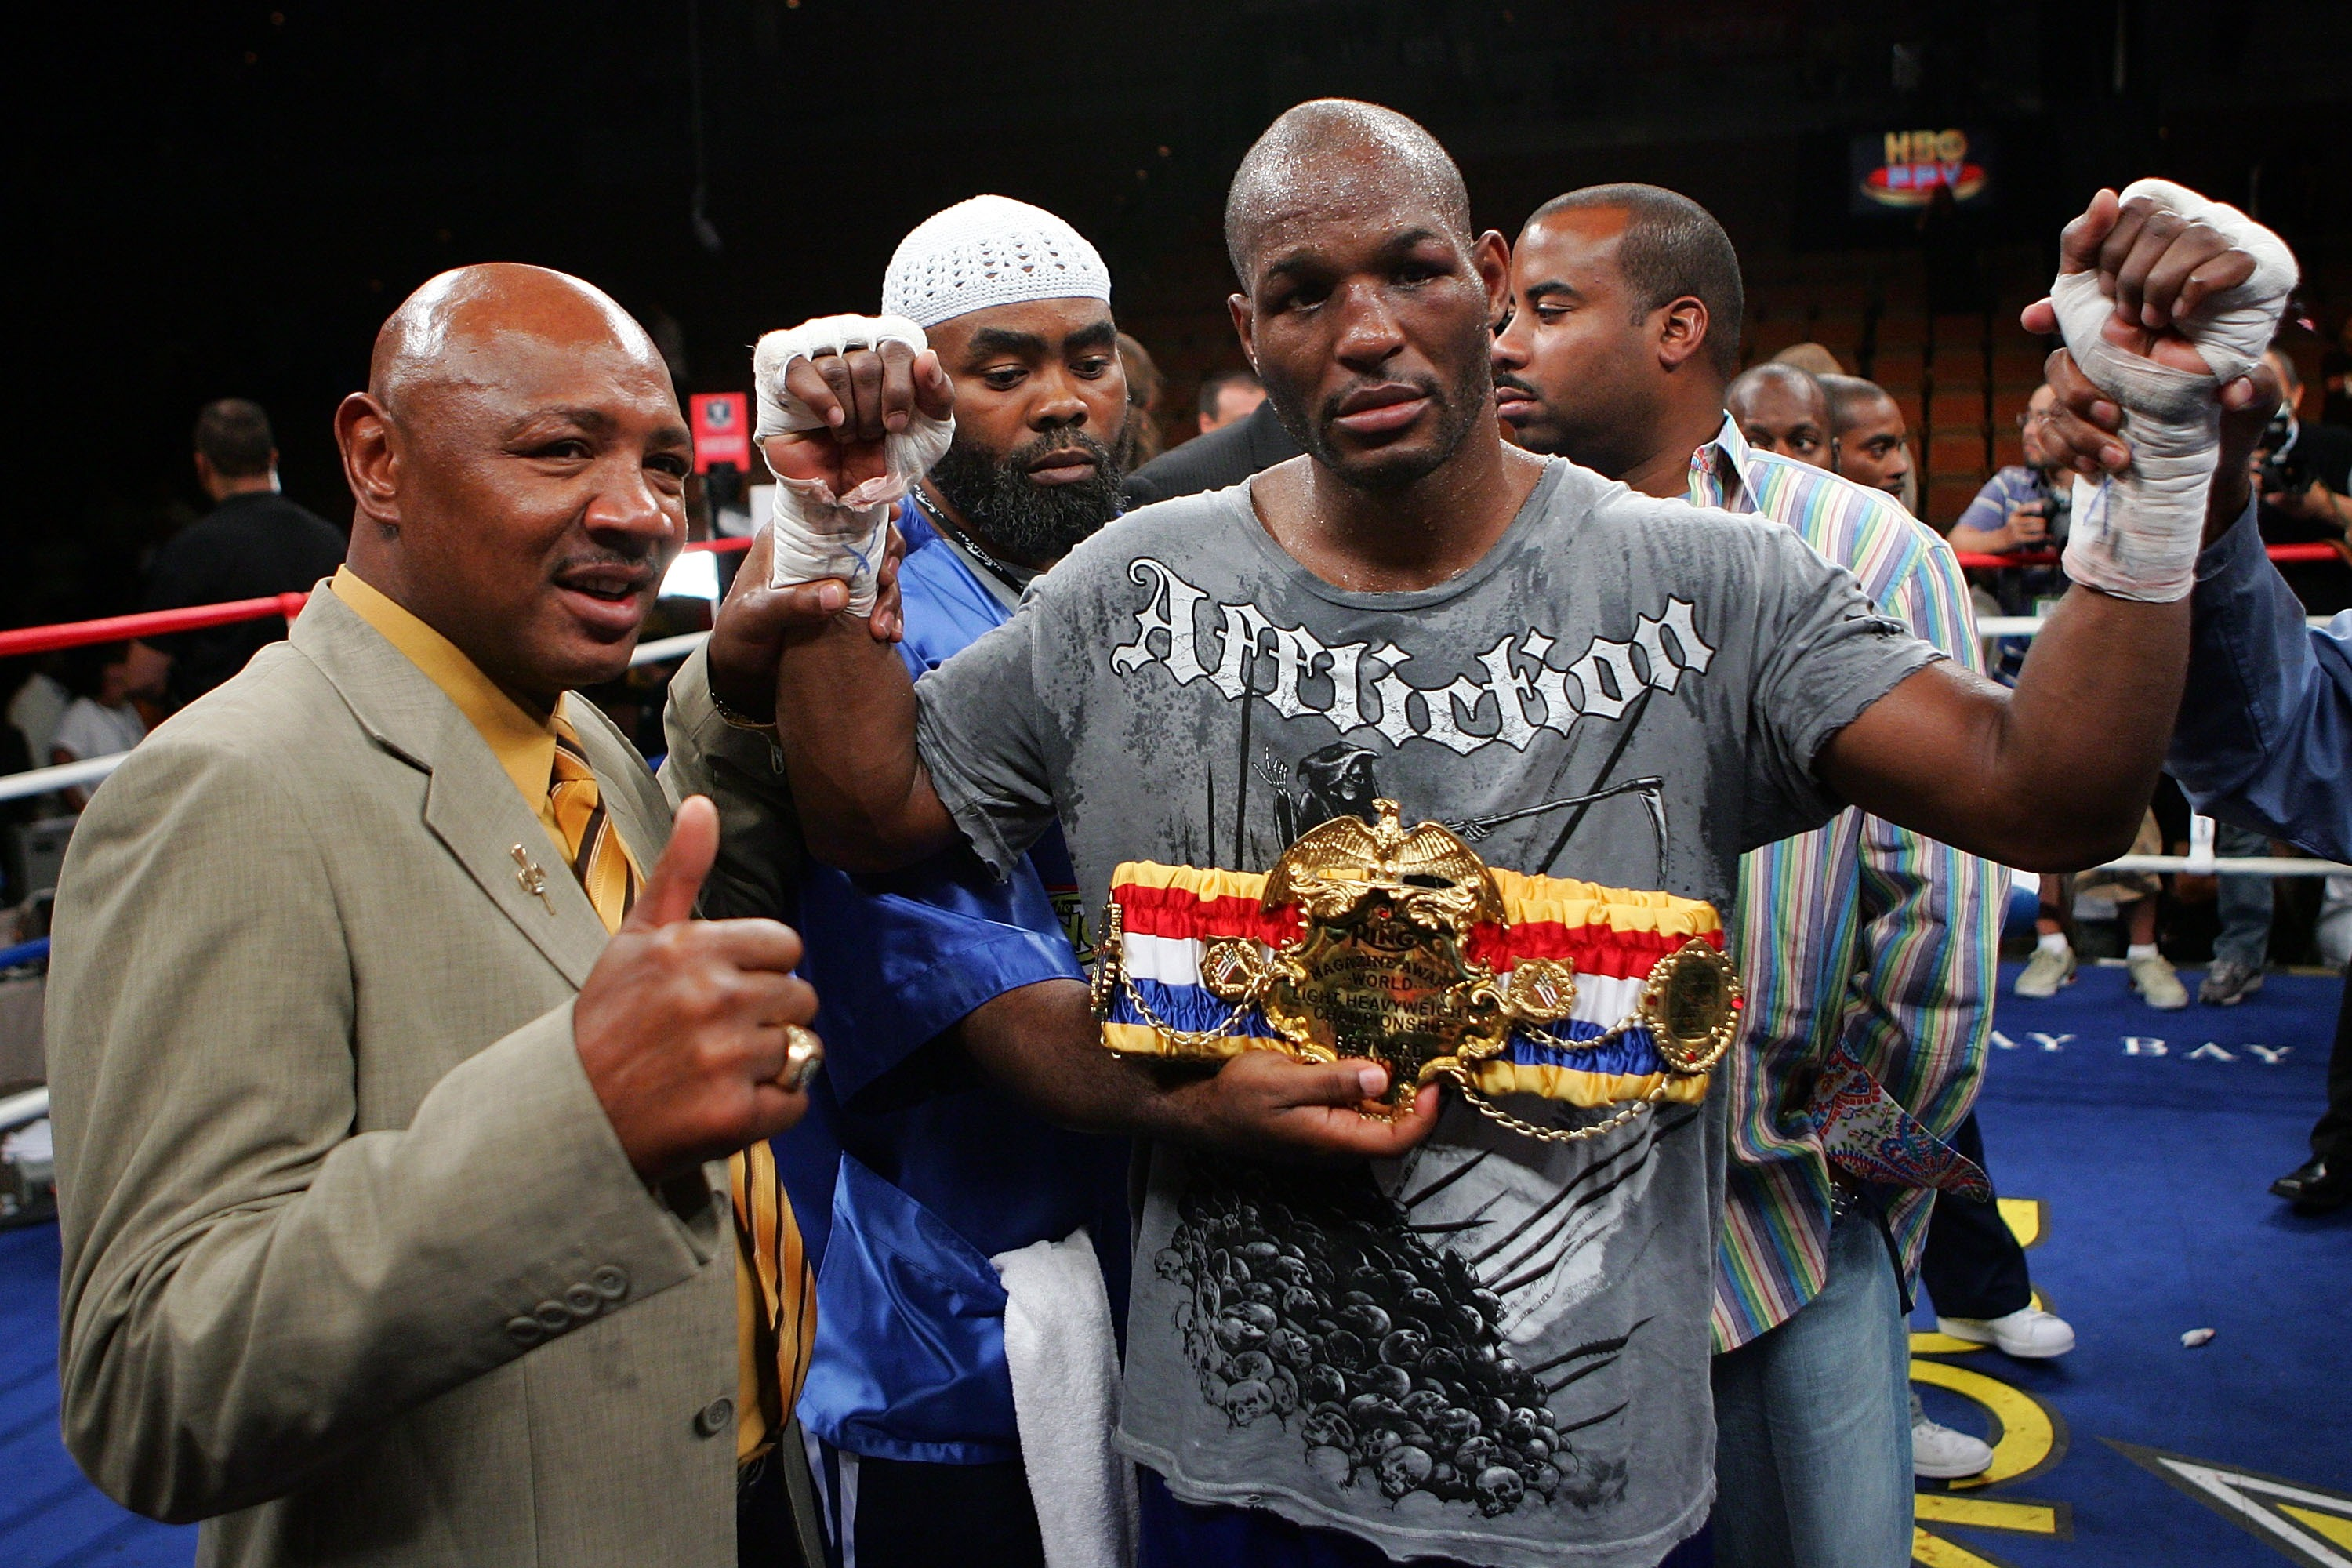 LAS VEGAS - JULY 21:  Bernard Hopkins (R) poses with former boxer Marvin Hagler after defeating Winky Wright by unanimous decision after Hopkins and Wright's light heavyweight fight at the Mandalay Bay Events Center July 21, 2007 in Las Vegas, Nevada.  (P